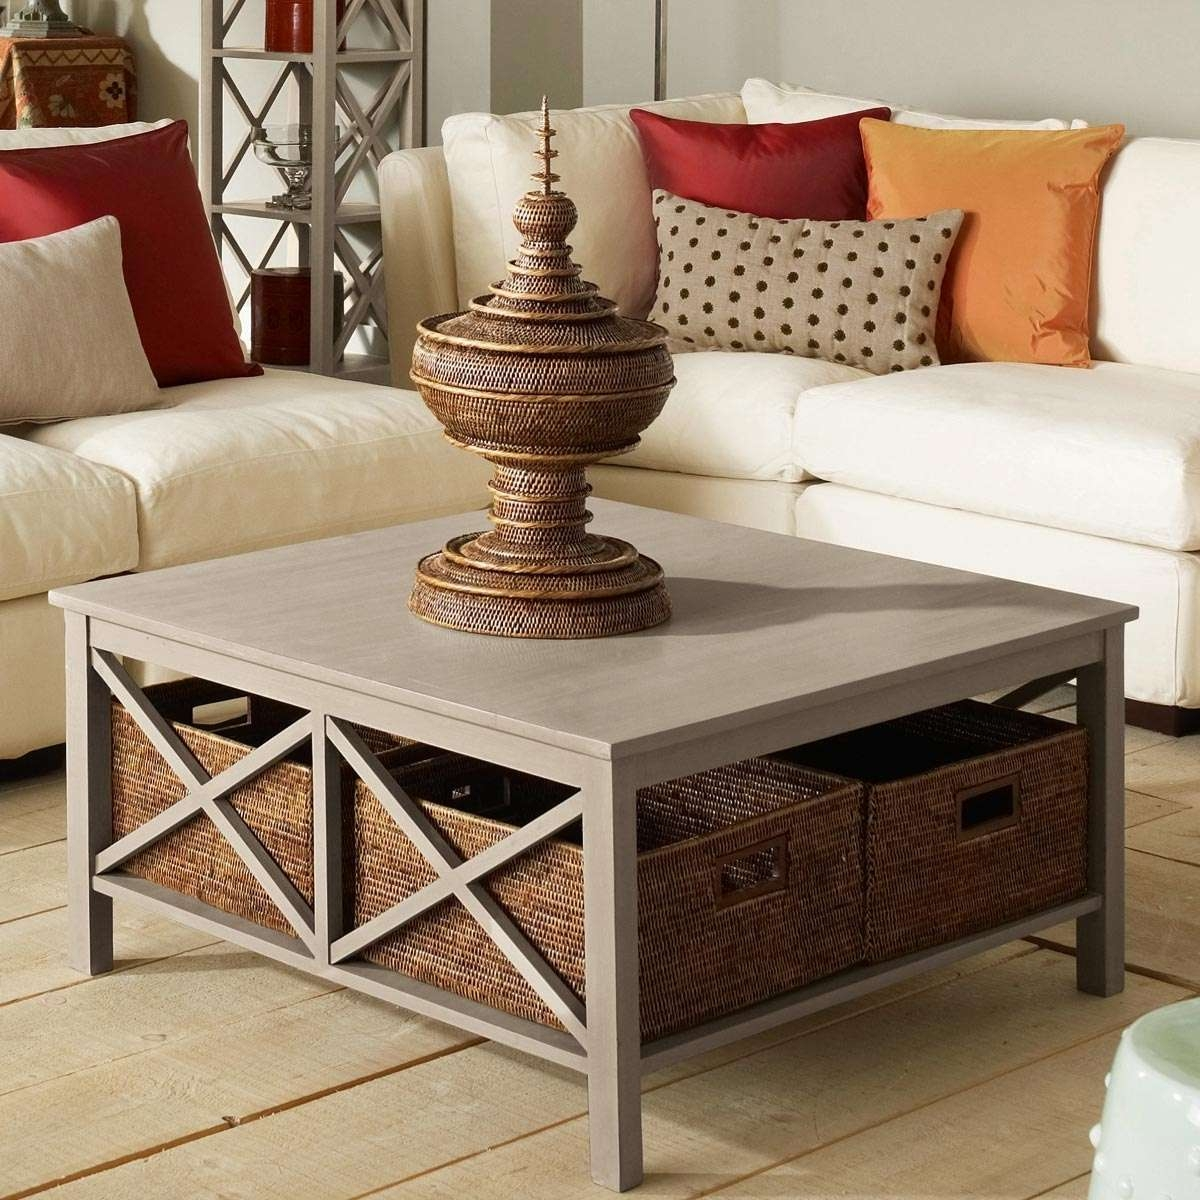 Most Popular Square Coffee Tables In Square Coffee Table With Storage Coffee Tables Inside Coffee Table (View 20 of 20)